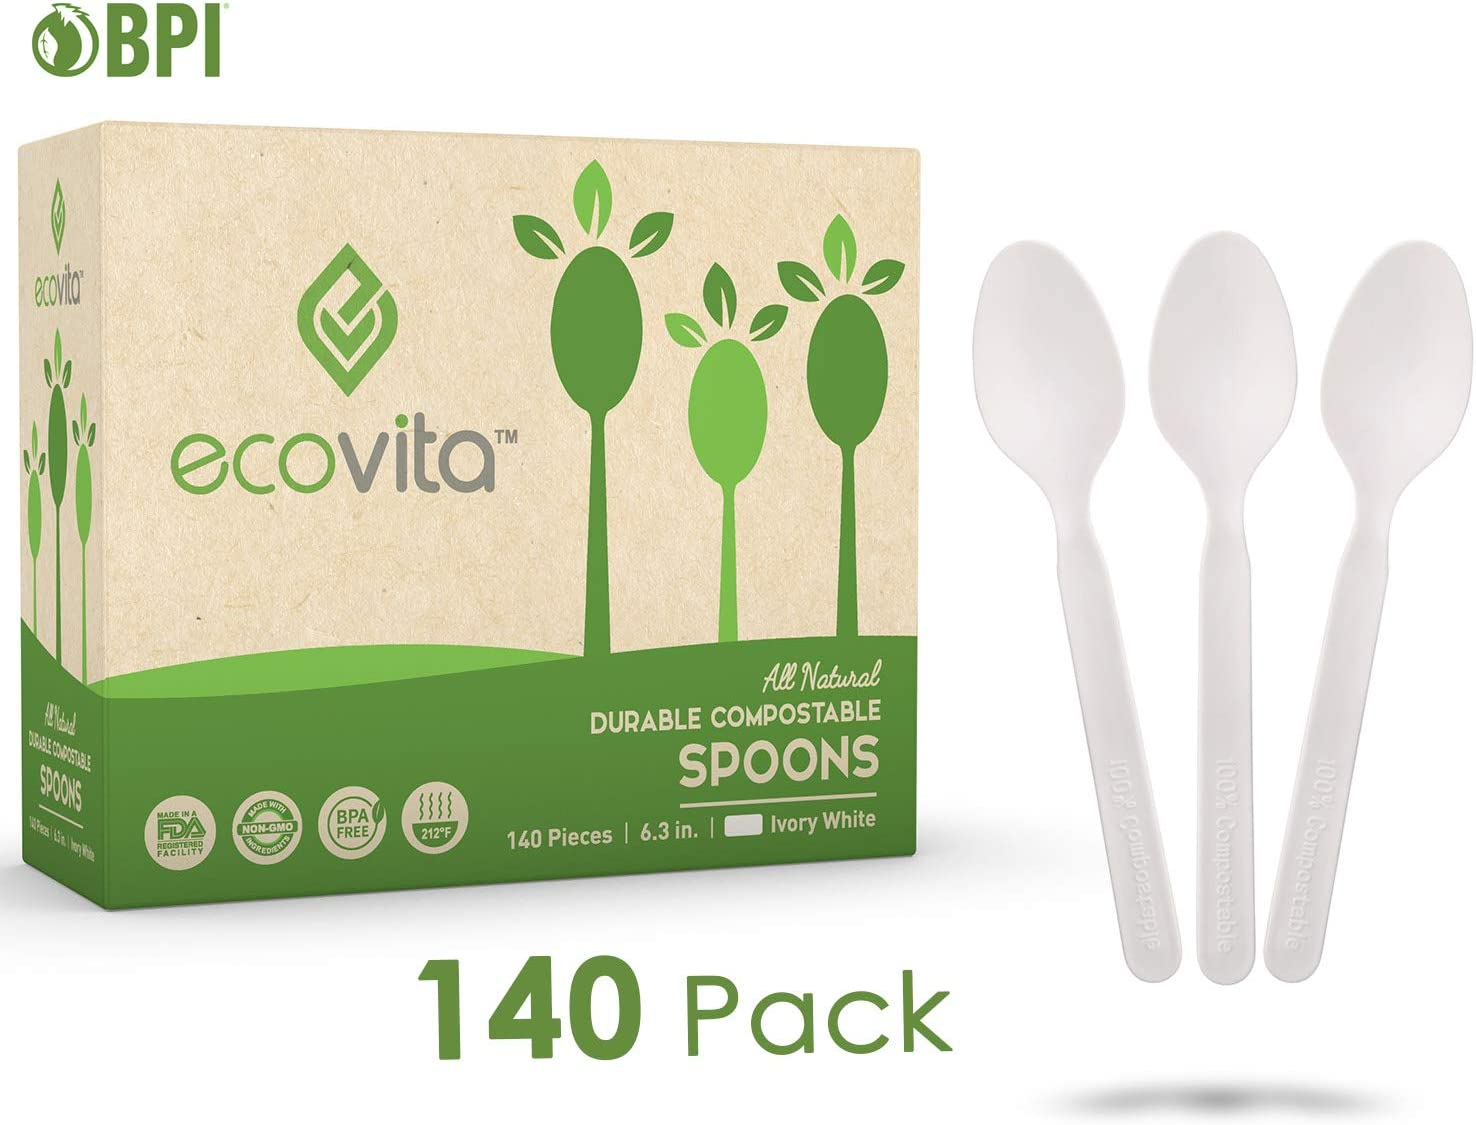 100% Compostable Spoons - 140 Large Disposable Utensils (6.5 in.) Eco Friendly Durable and Heat Resistant Plastic Spoons Alternative with Convenient Tray by Ecovita